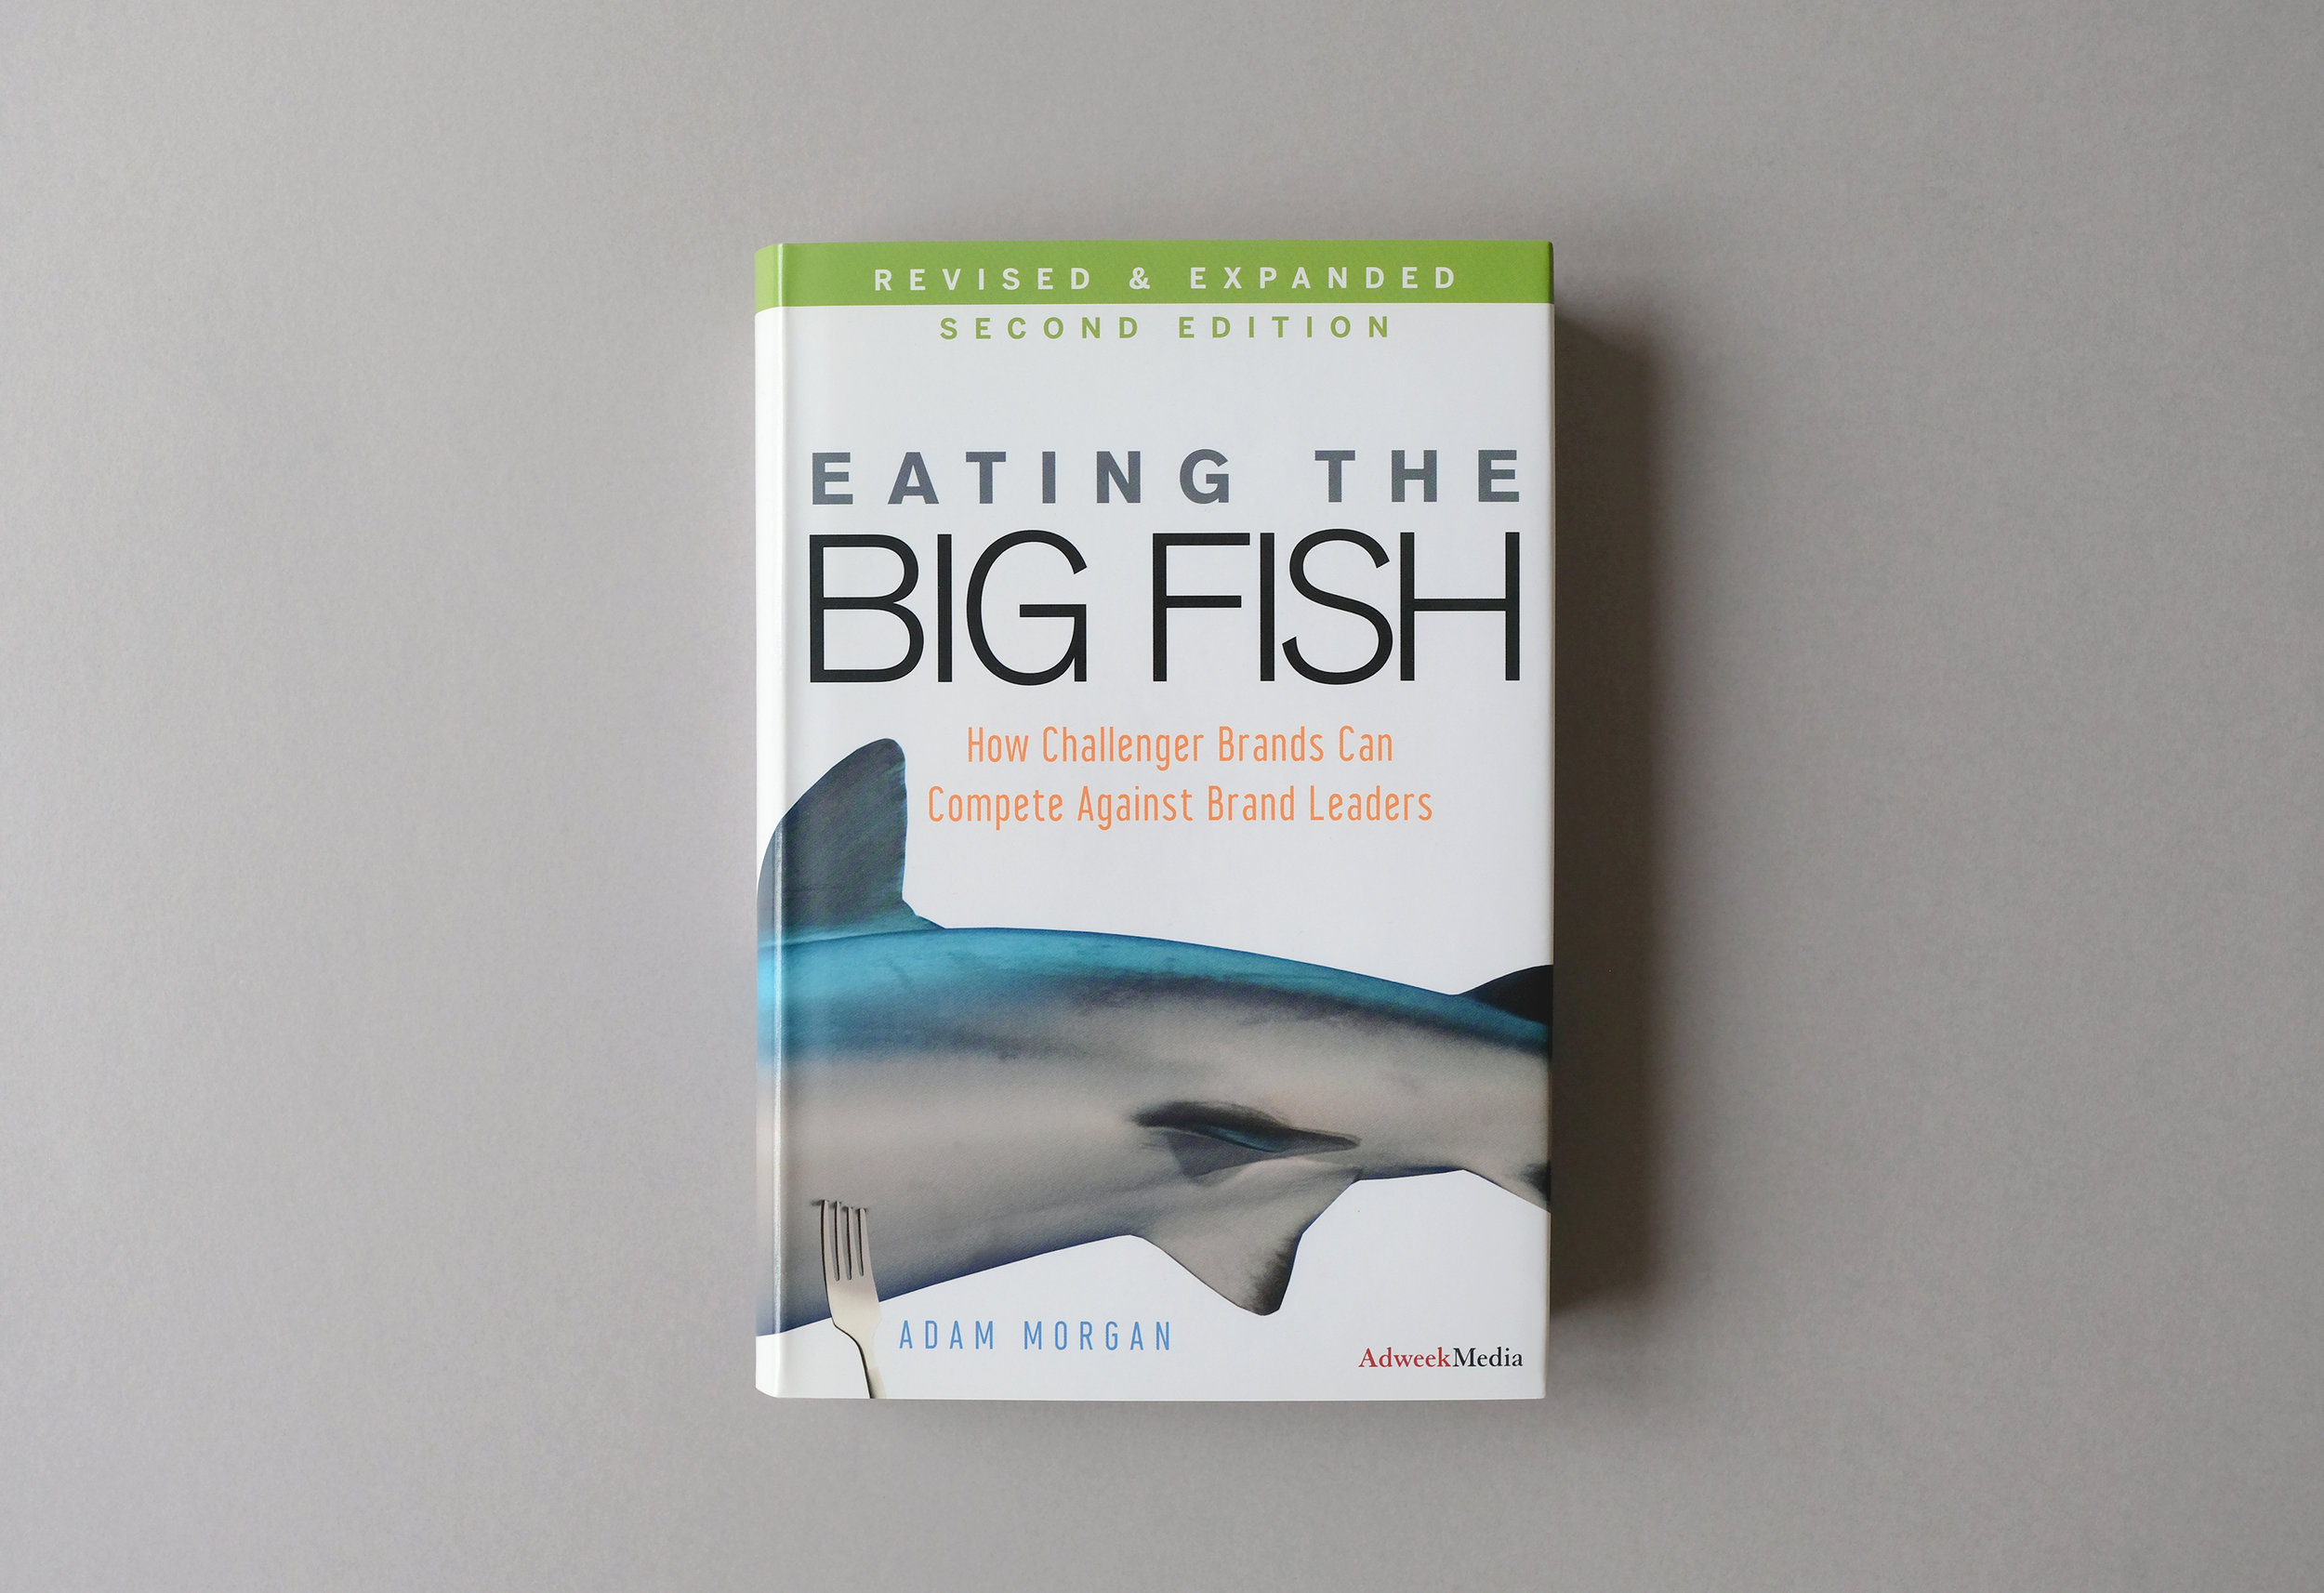 Eating the Big Fish: How challenger brands can compete against brand leaders. By Adam Morgan.